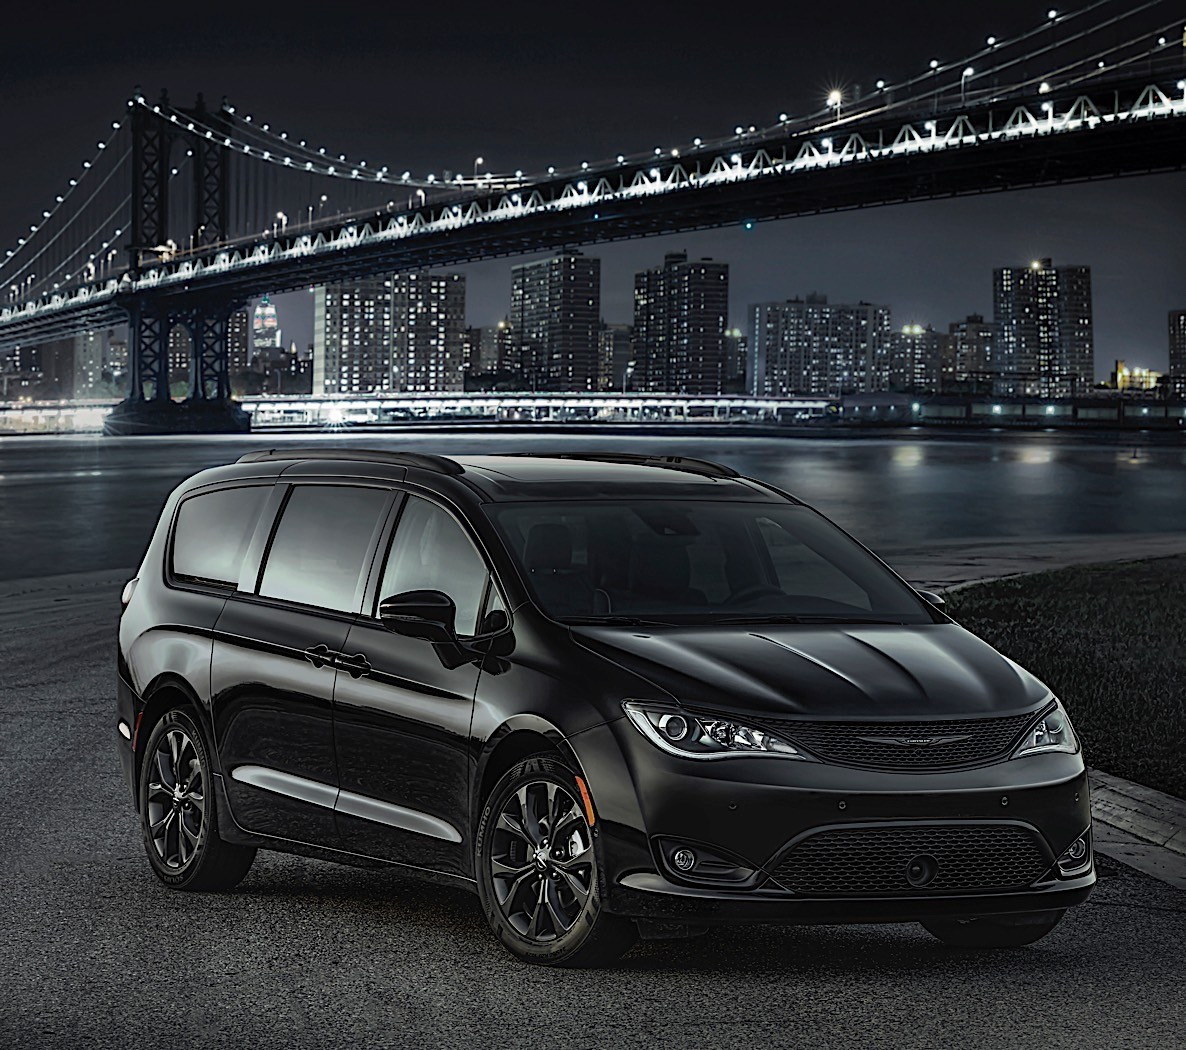 Chrysler Pacifica And Dodge Caravan Get 35th Anniversary